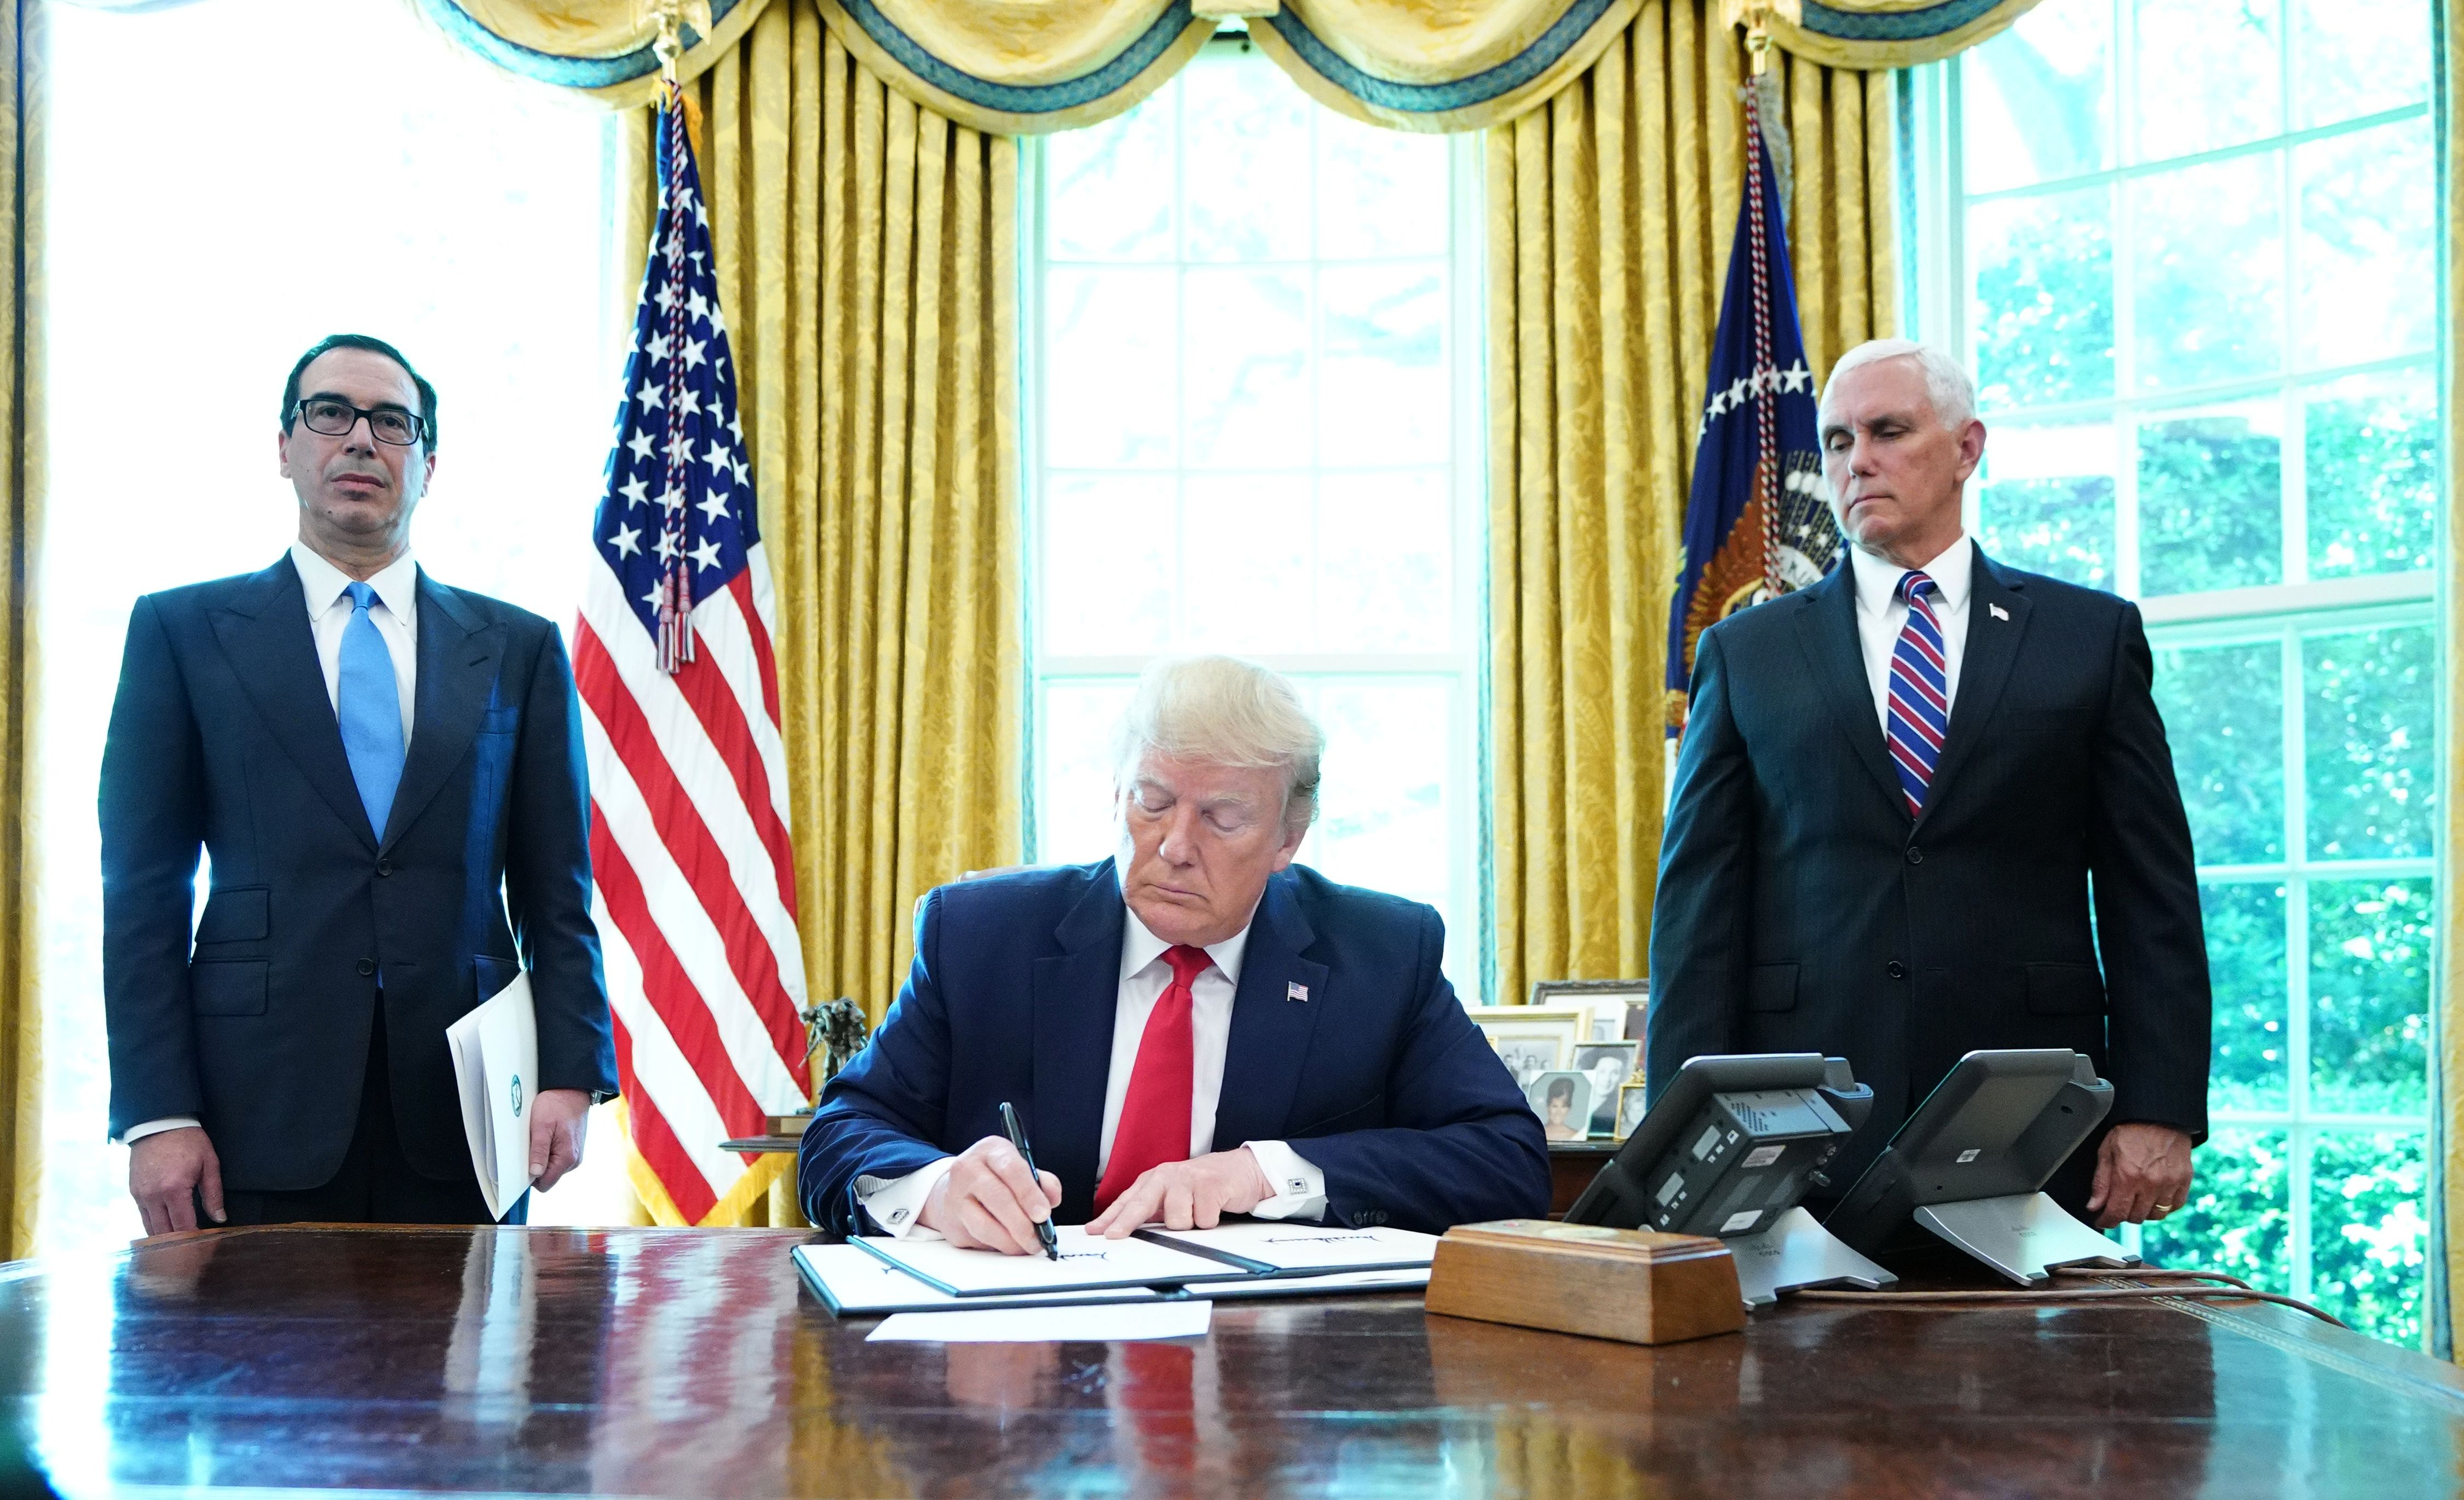 US President Donald Trump signs with US Vice President Mike Pence and US Secretary of Treasury Steven Mnuchin at the White House on June 24, 2019, 'hard-hitting sanctions' on Iran's supreme leader. (MANDEL NGAN/AFP/Getty Images)